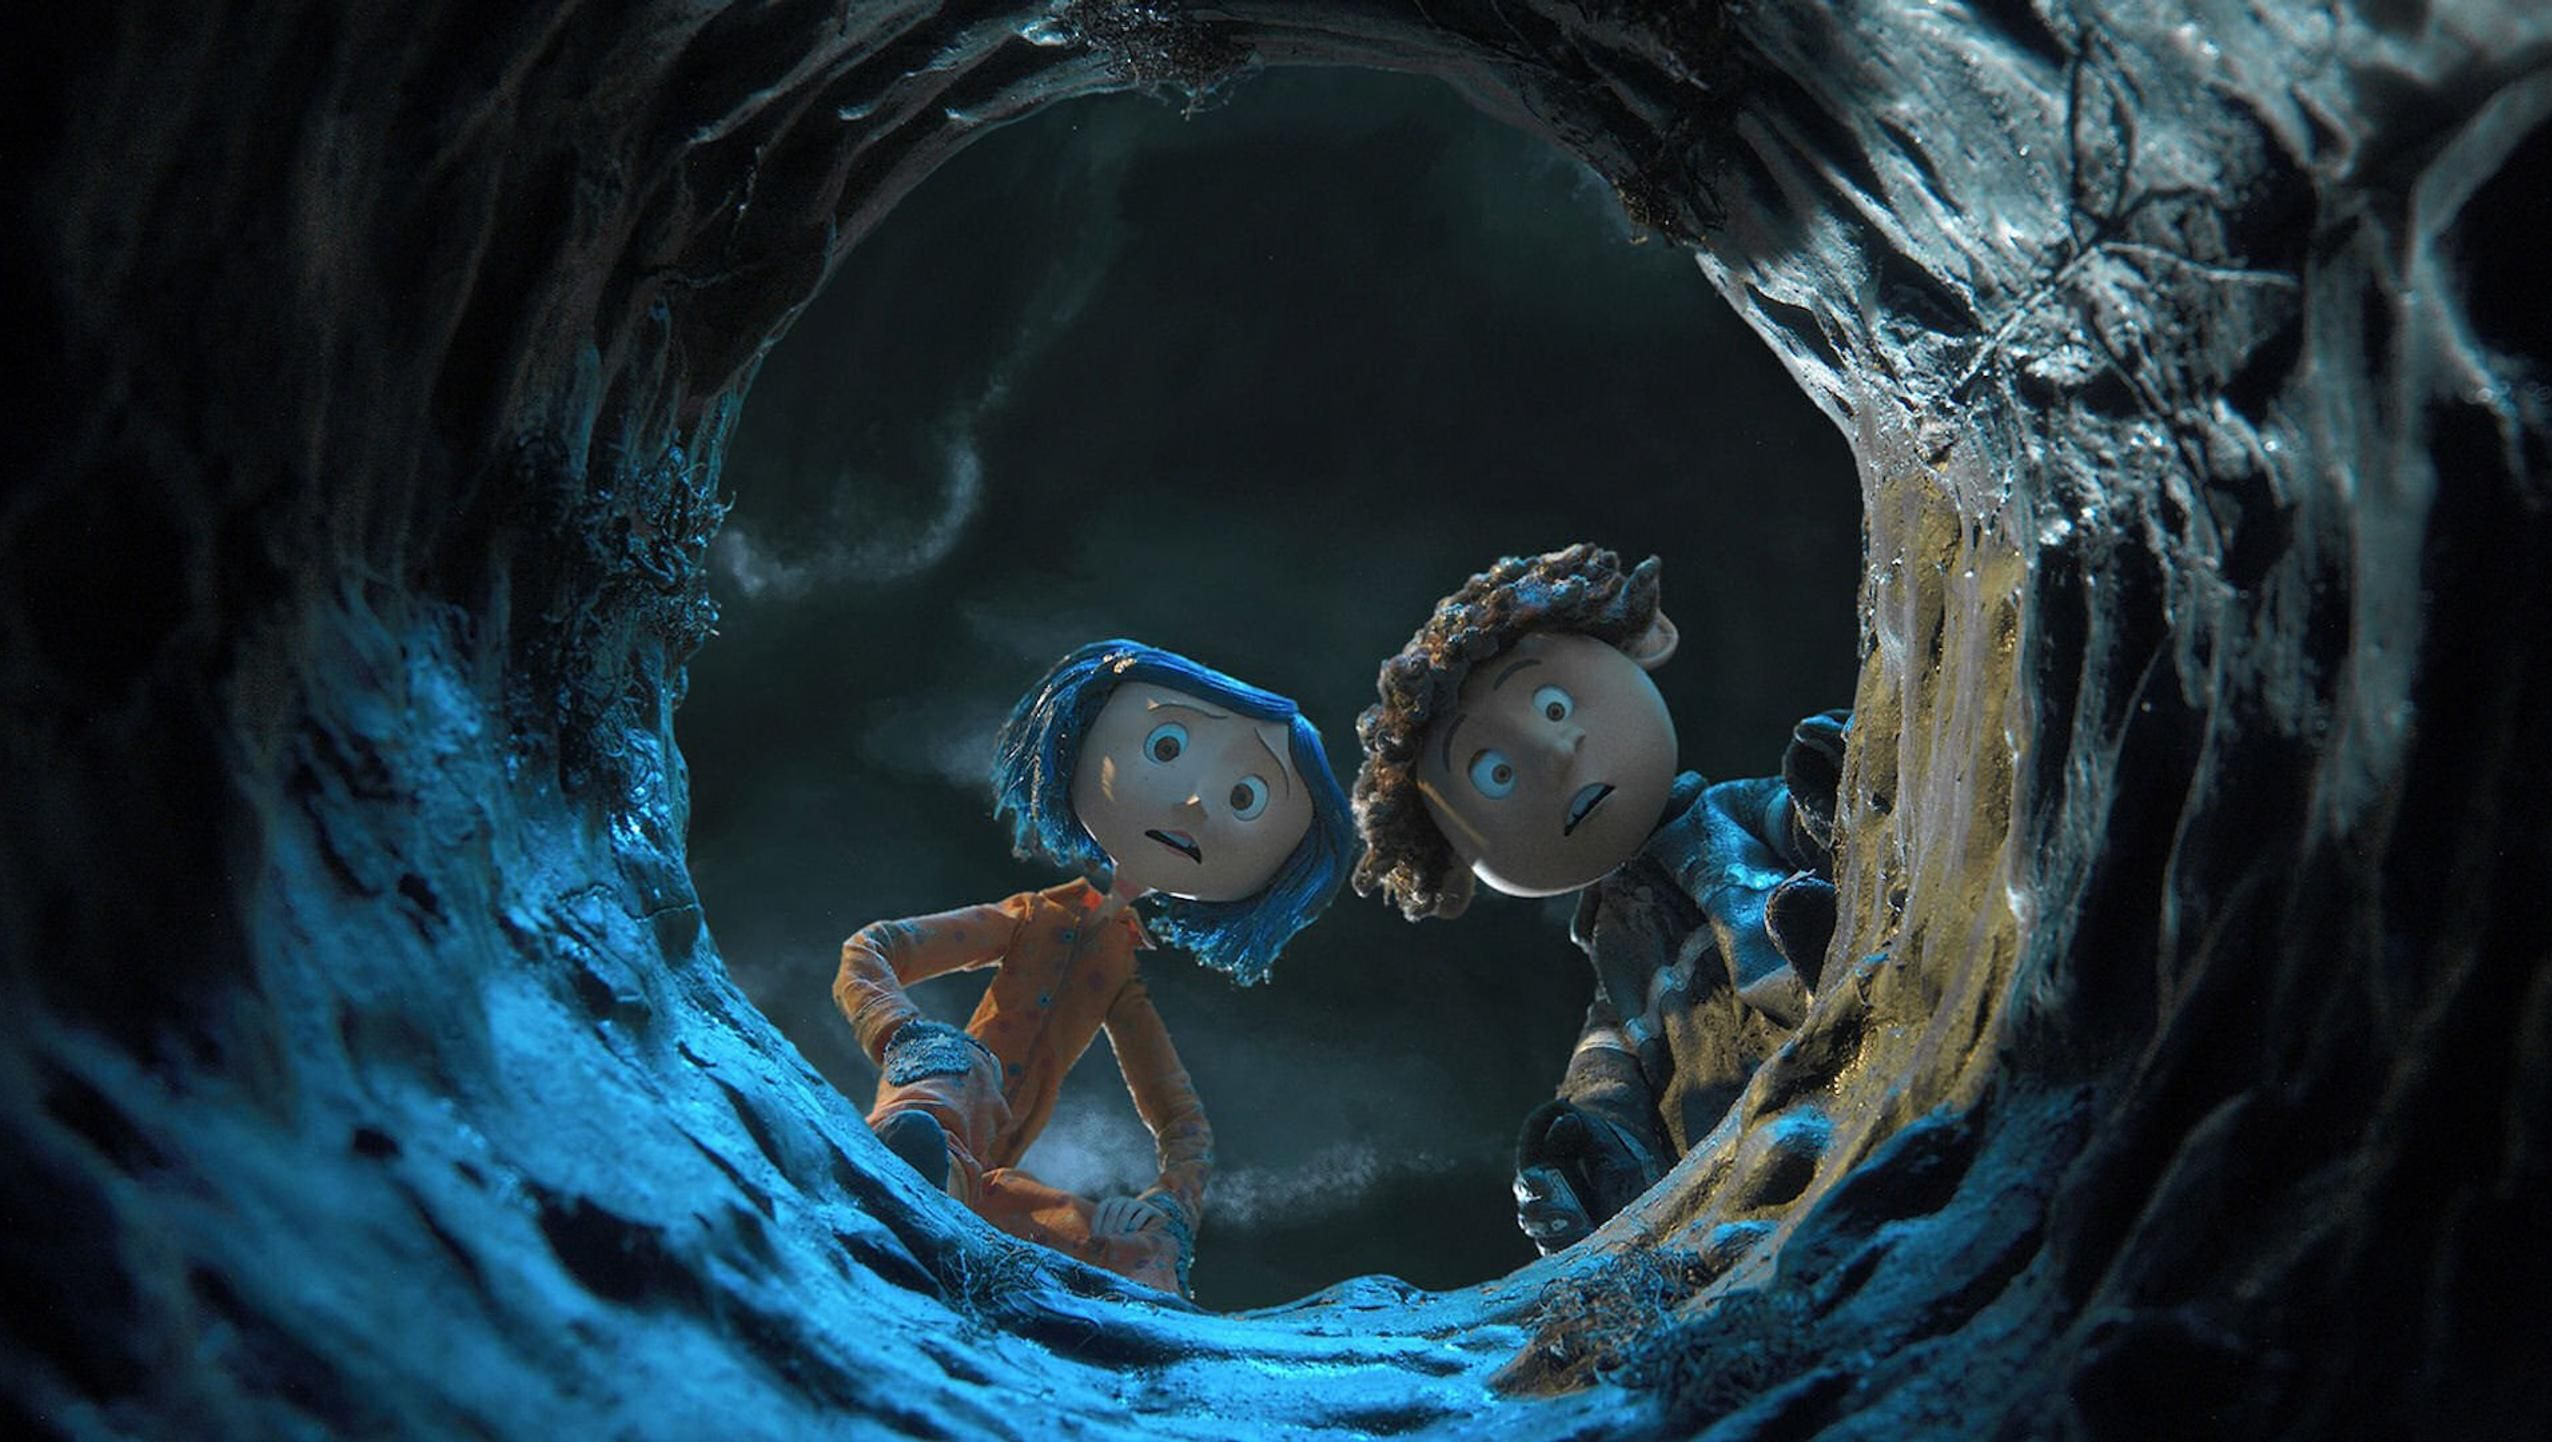 Coraline 2009 Desktop Wallpaper Moviemania In 2020 Coraline Film Coraline Aesthetic Coraline And Wybie